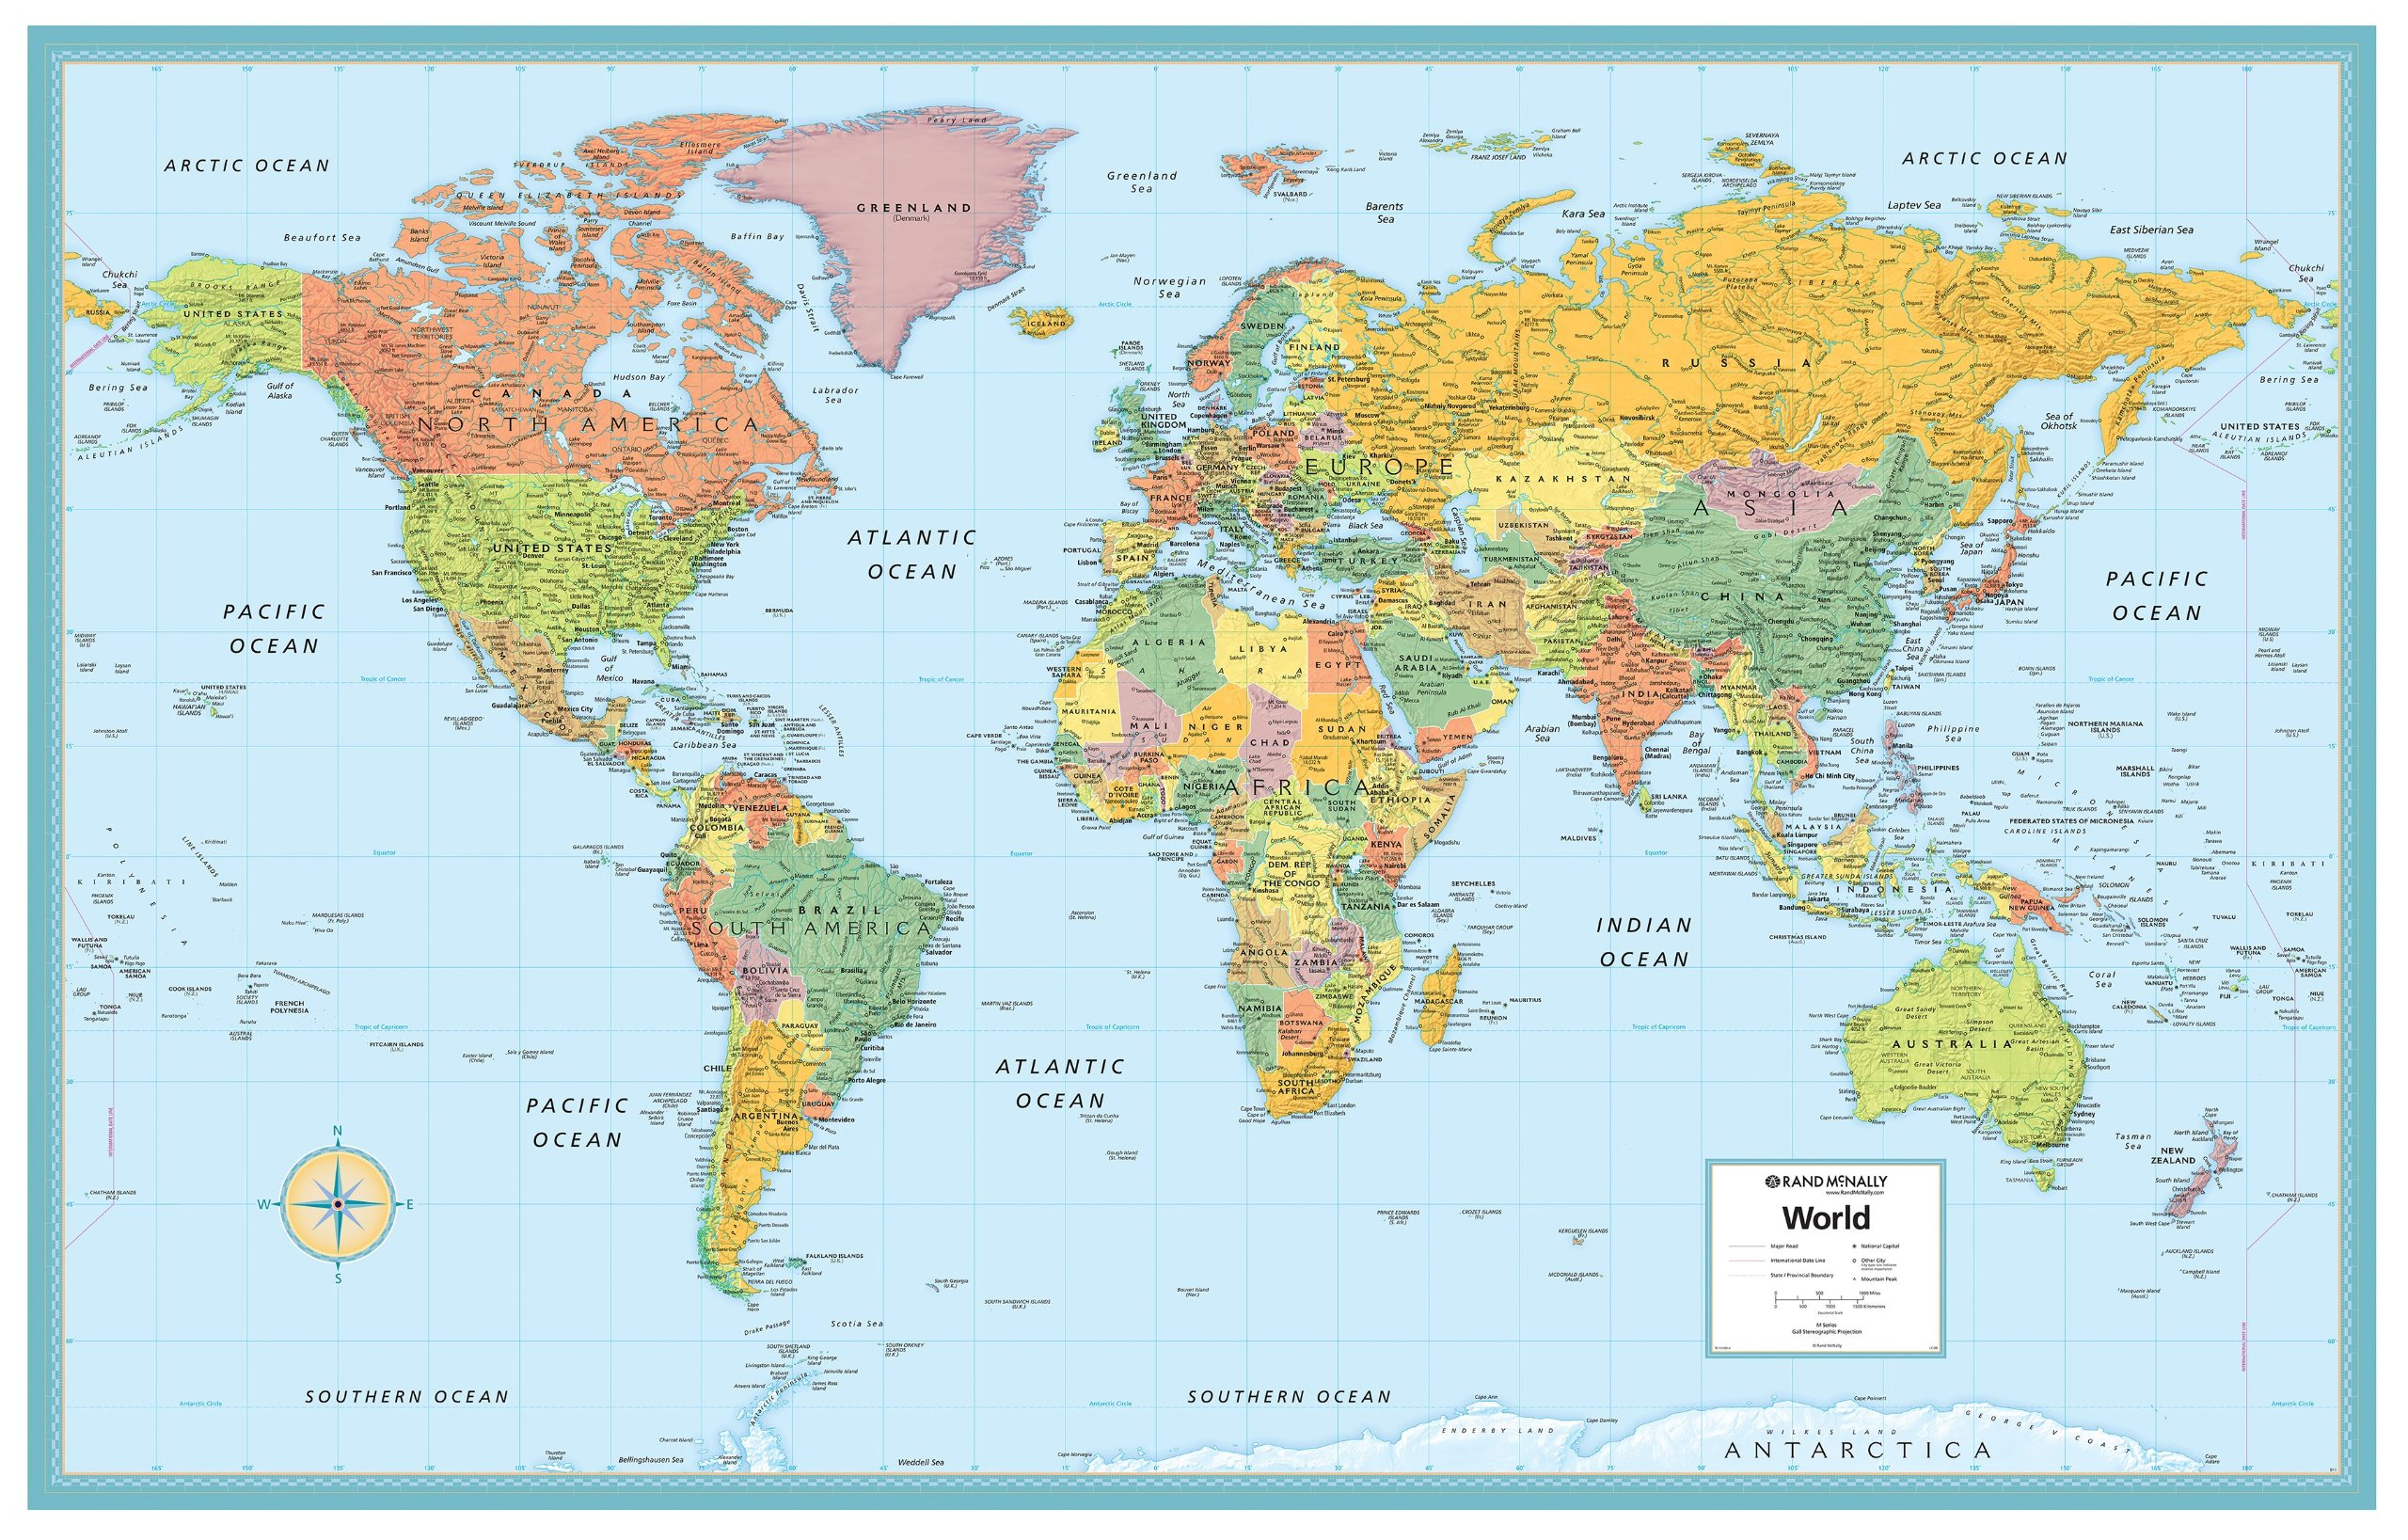 Rand mcnally deluxe laminated world wall map rand mcnally rand mcnally deluxe laminated world wall map rand mcnally 9780528959974 amazon books gumiabroncs Gallery